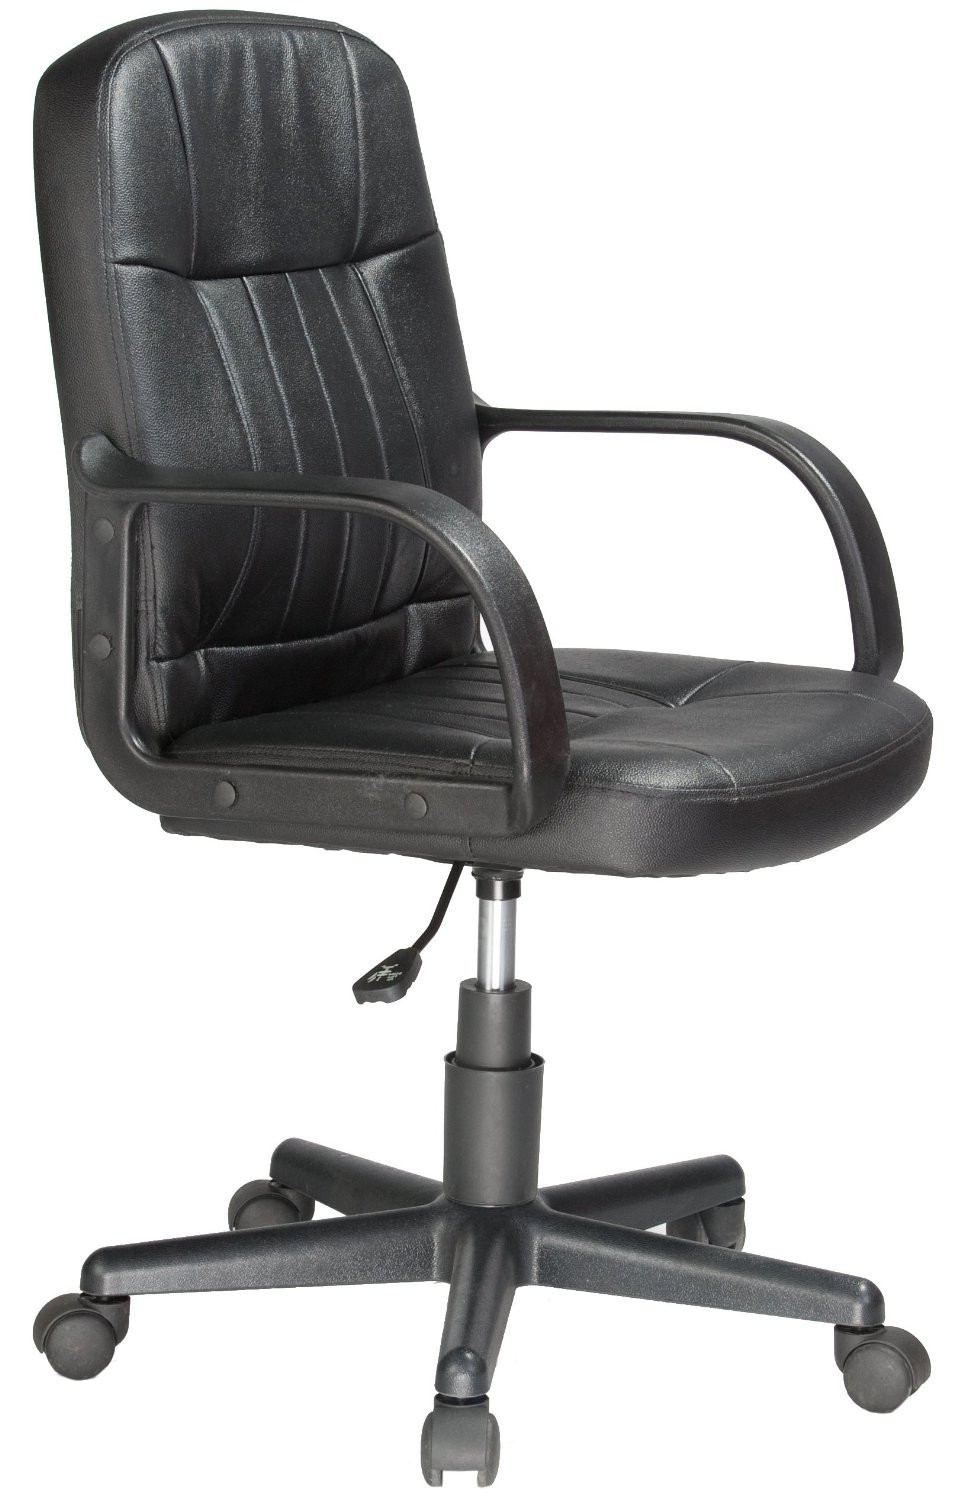 Best ideas about Cheap Desk Chair . Save or Pin Furniture Accessible Walmart Desk Chairs For Good fice Now.